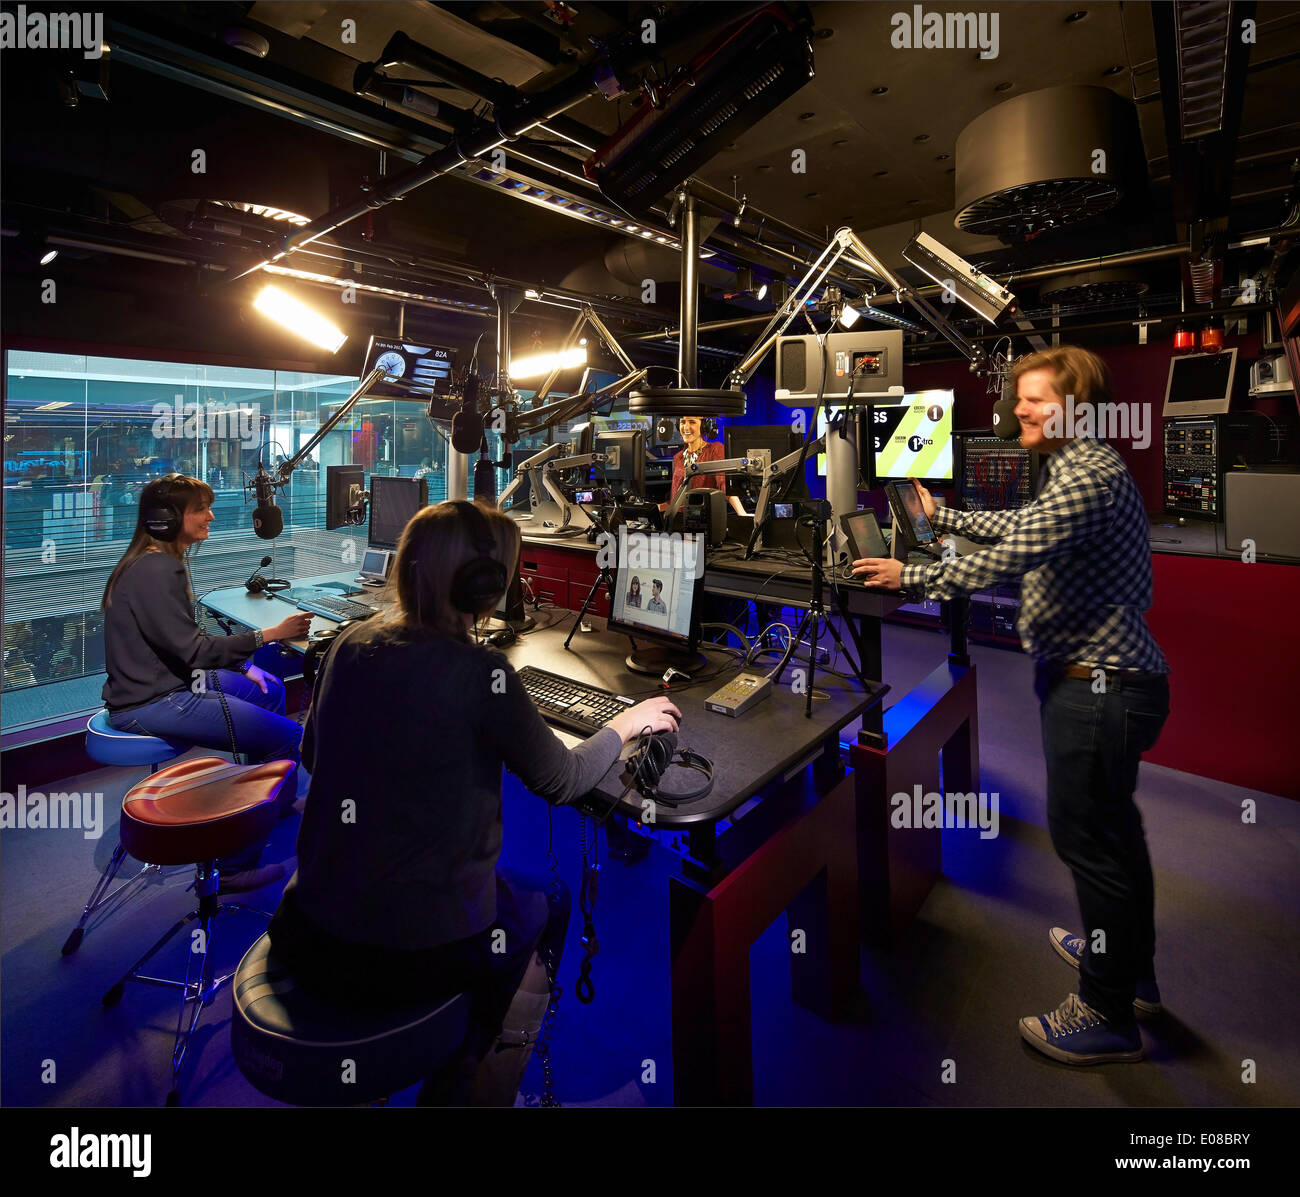 Bbc broadcasting house london united kingdom architect for Tech house london